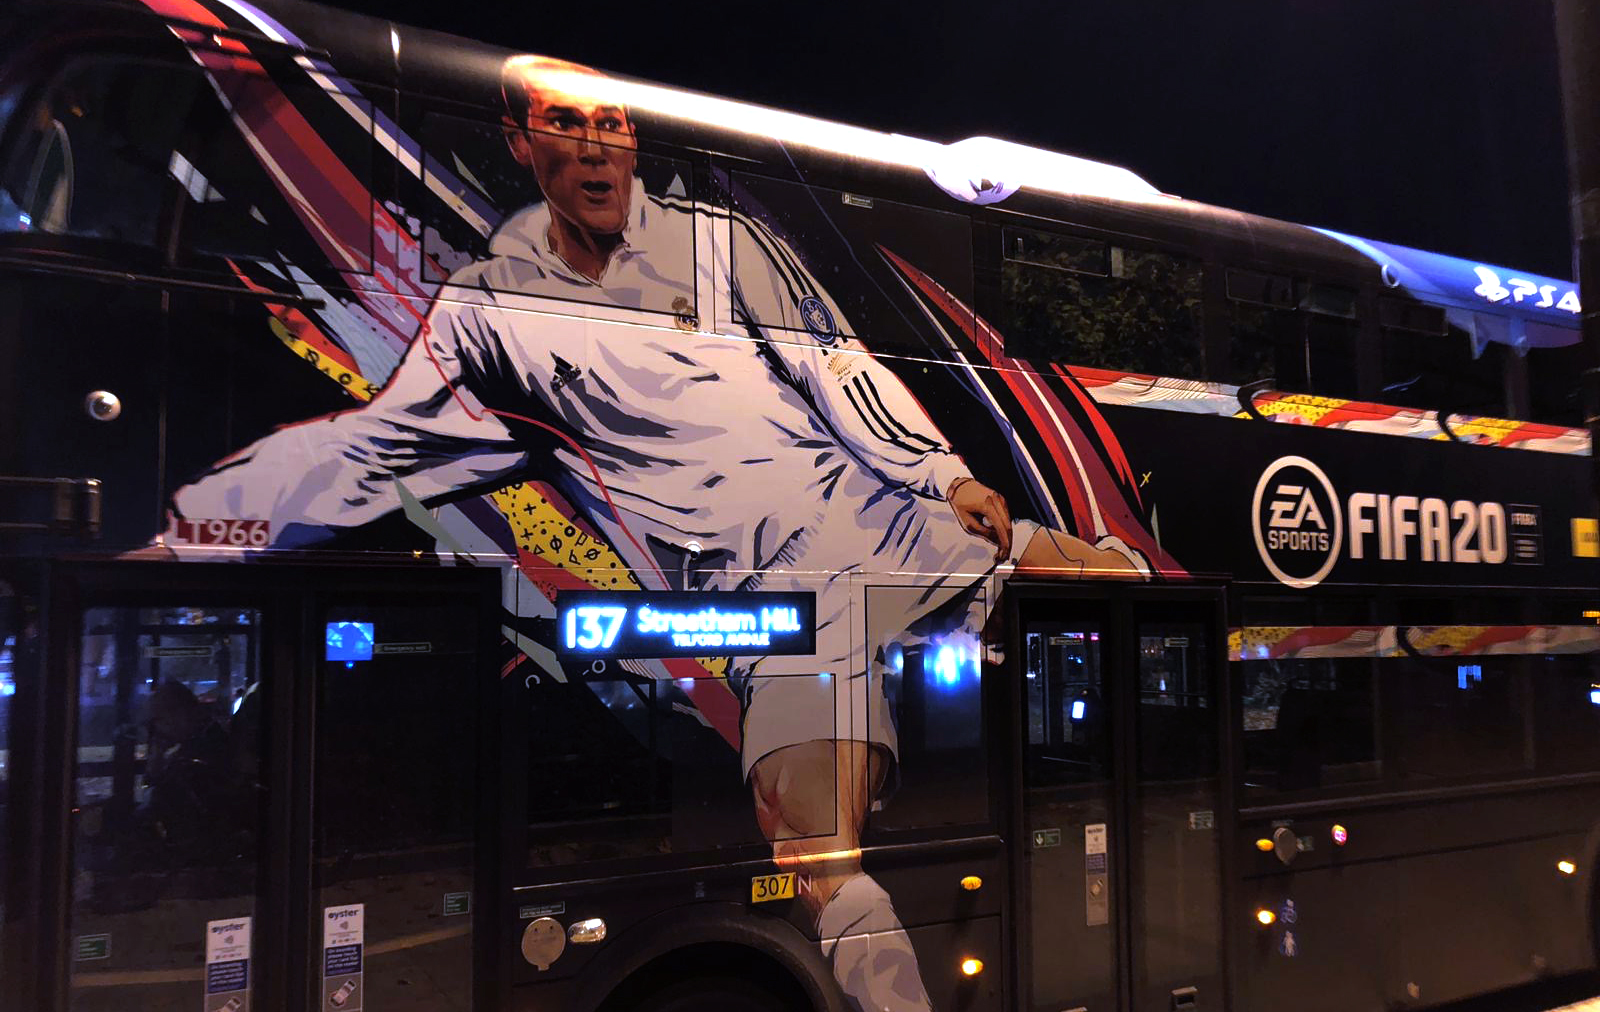 bus-wrap-ooh-artwork-fifa